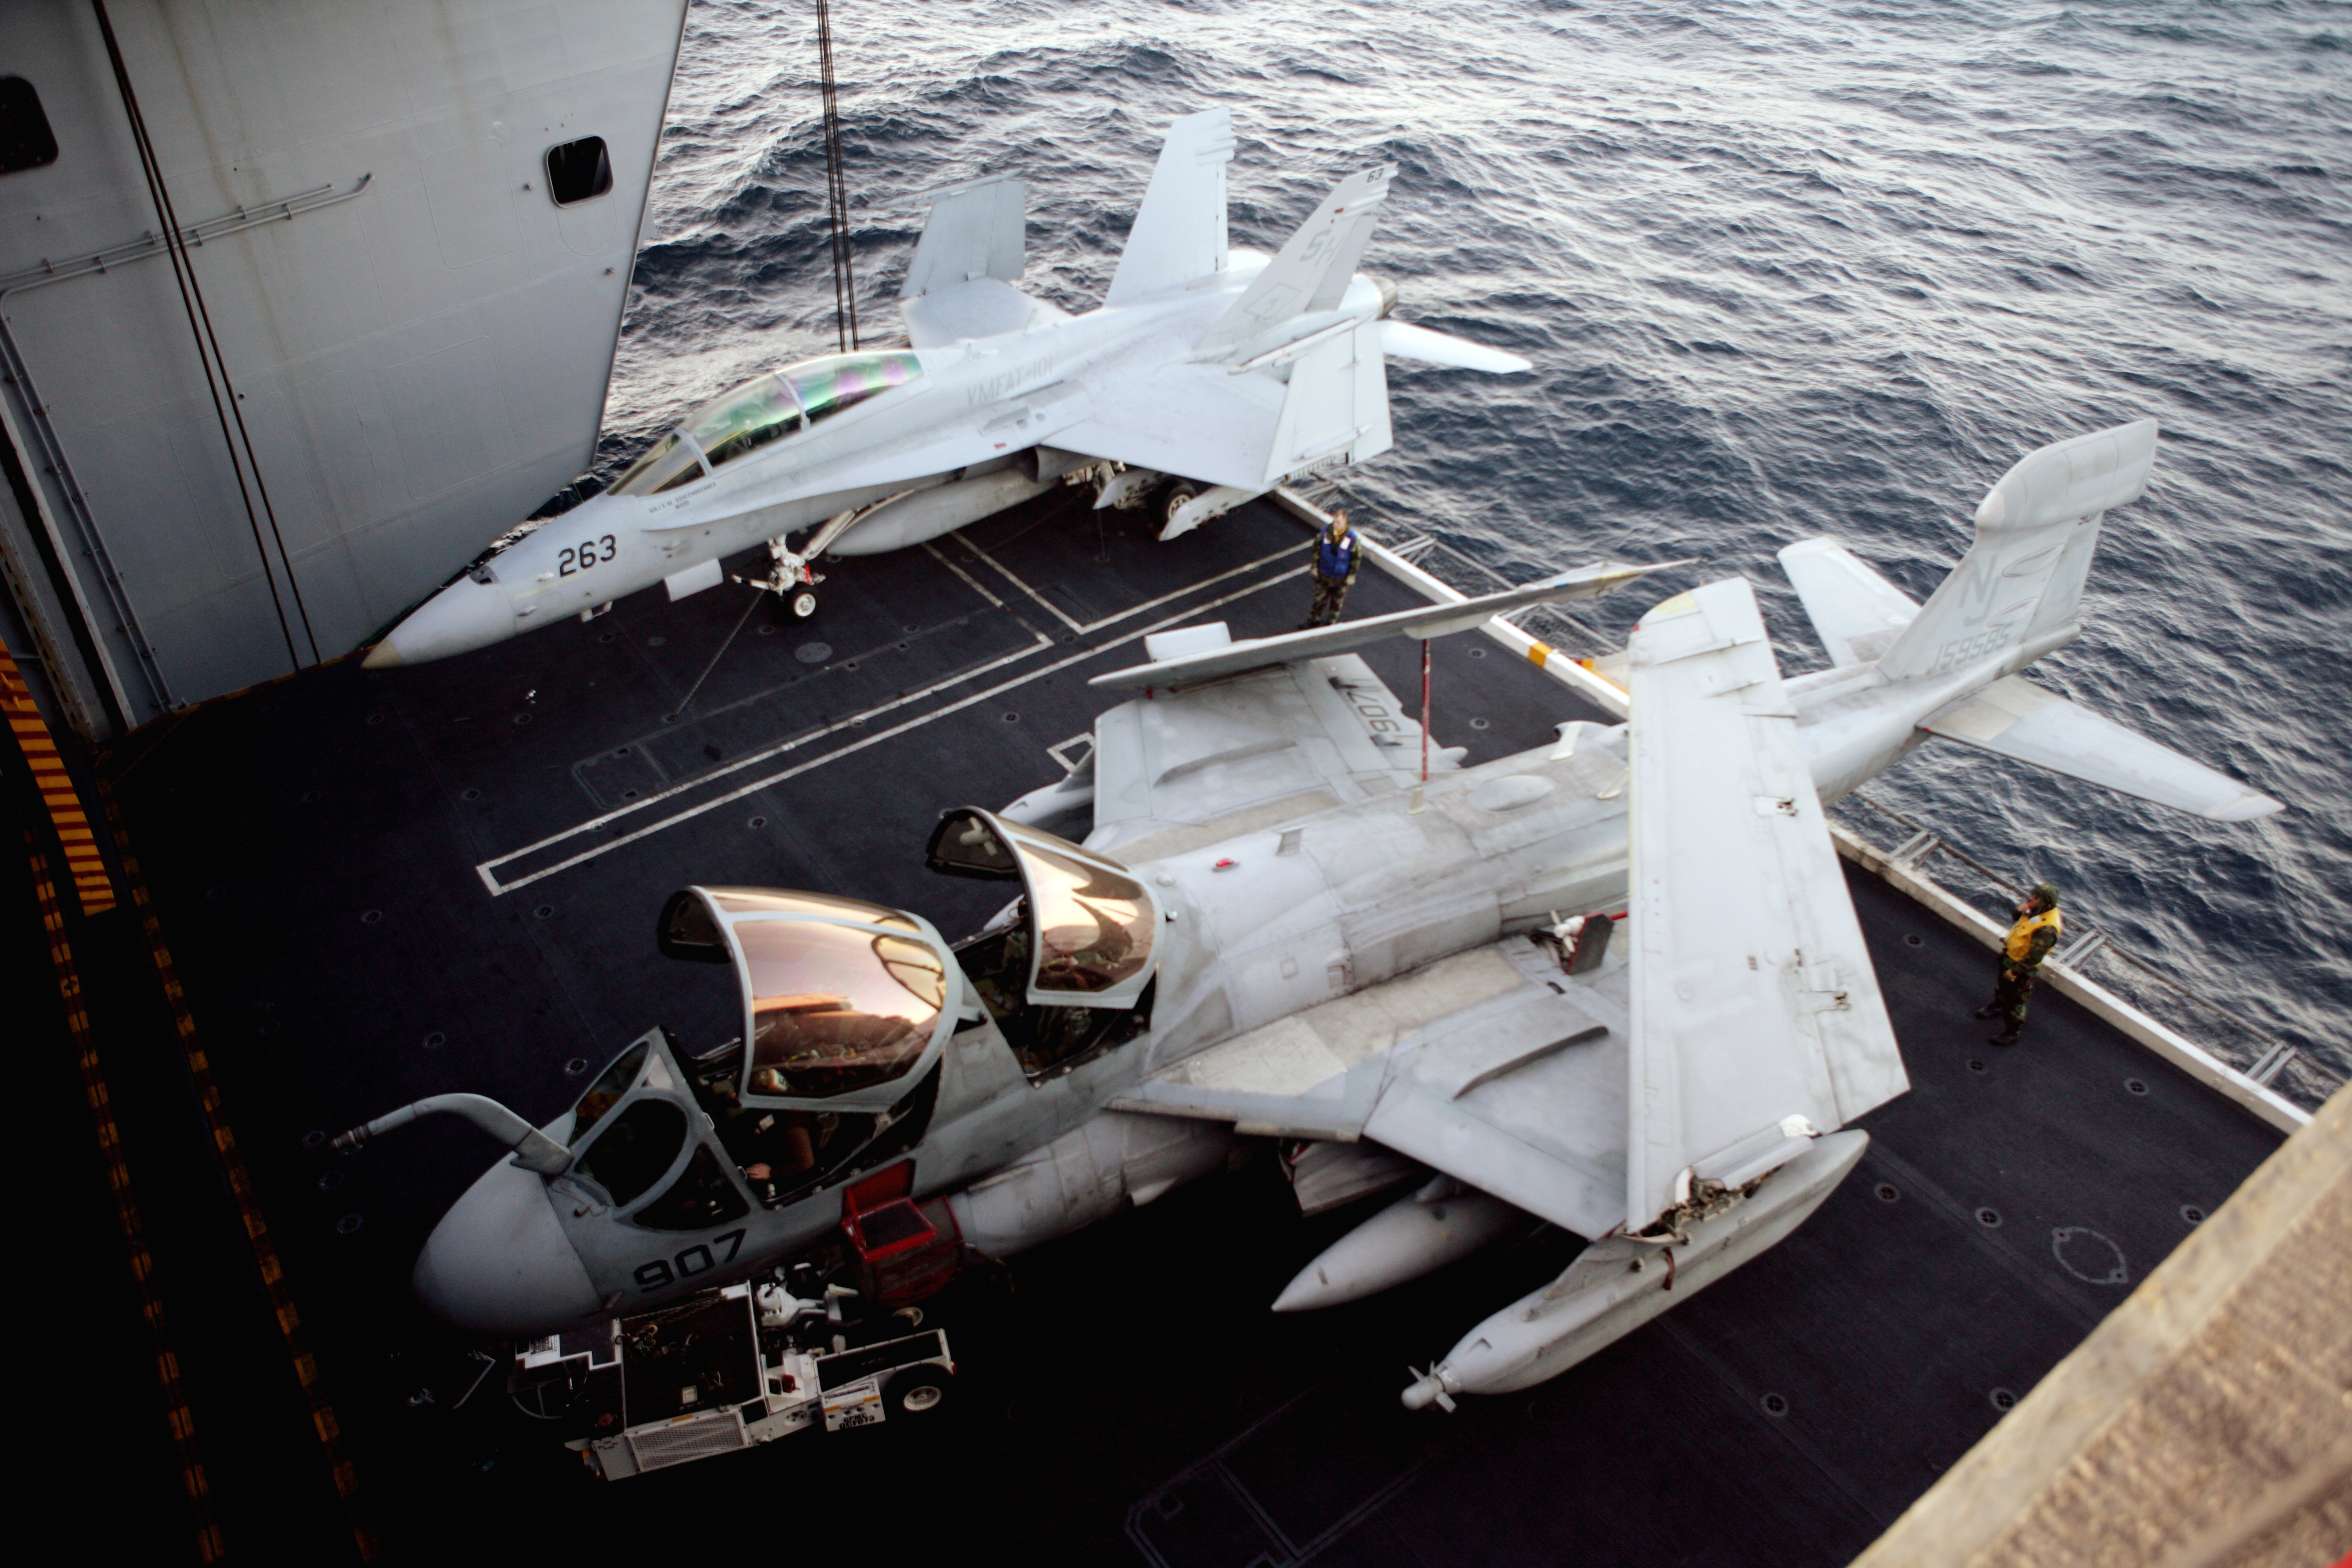 https://upload.wikimedia.org/wikipedia/commons/8/82/US_Navy_090324-M-1842L-005_An_F-A-18D_Hornet_and_an_E-A-6B_Prowler_are_on_elevator_three_to_be_brought_to_the_flight_deck_of_the_nuclear-powered_aircraft_carrier_USS_Nimitz_(CVN_68).jpg